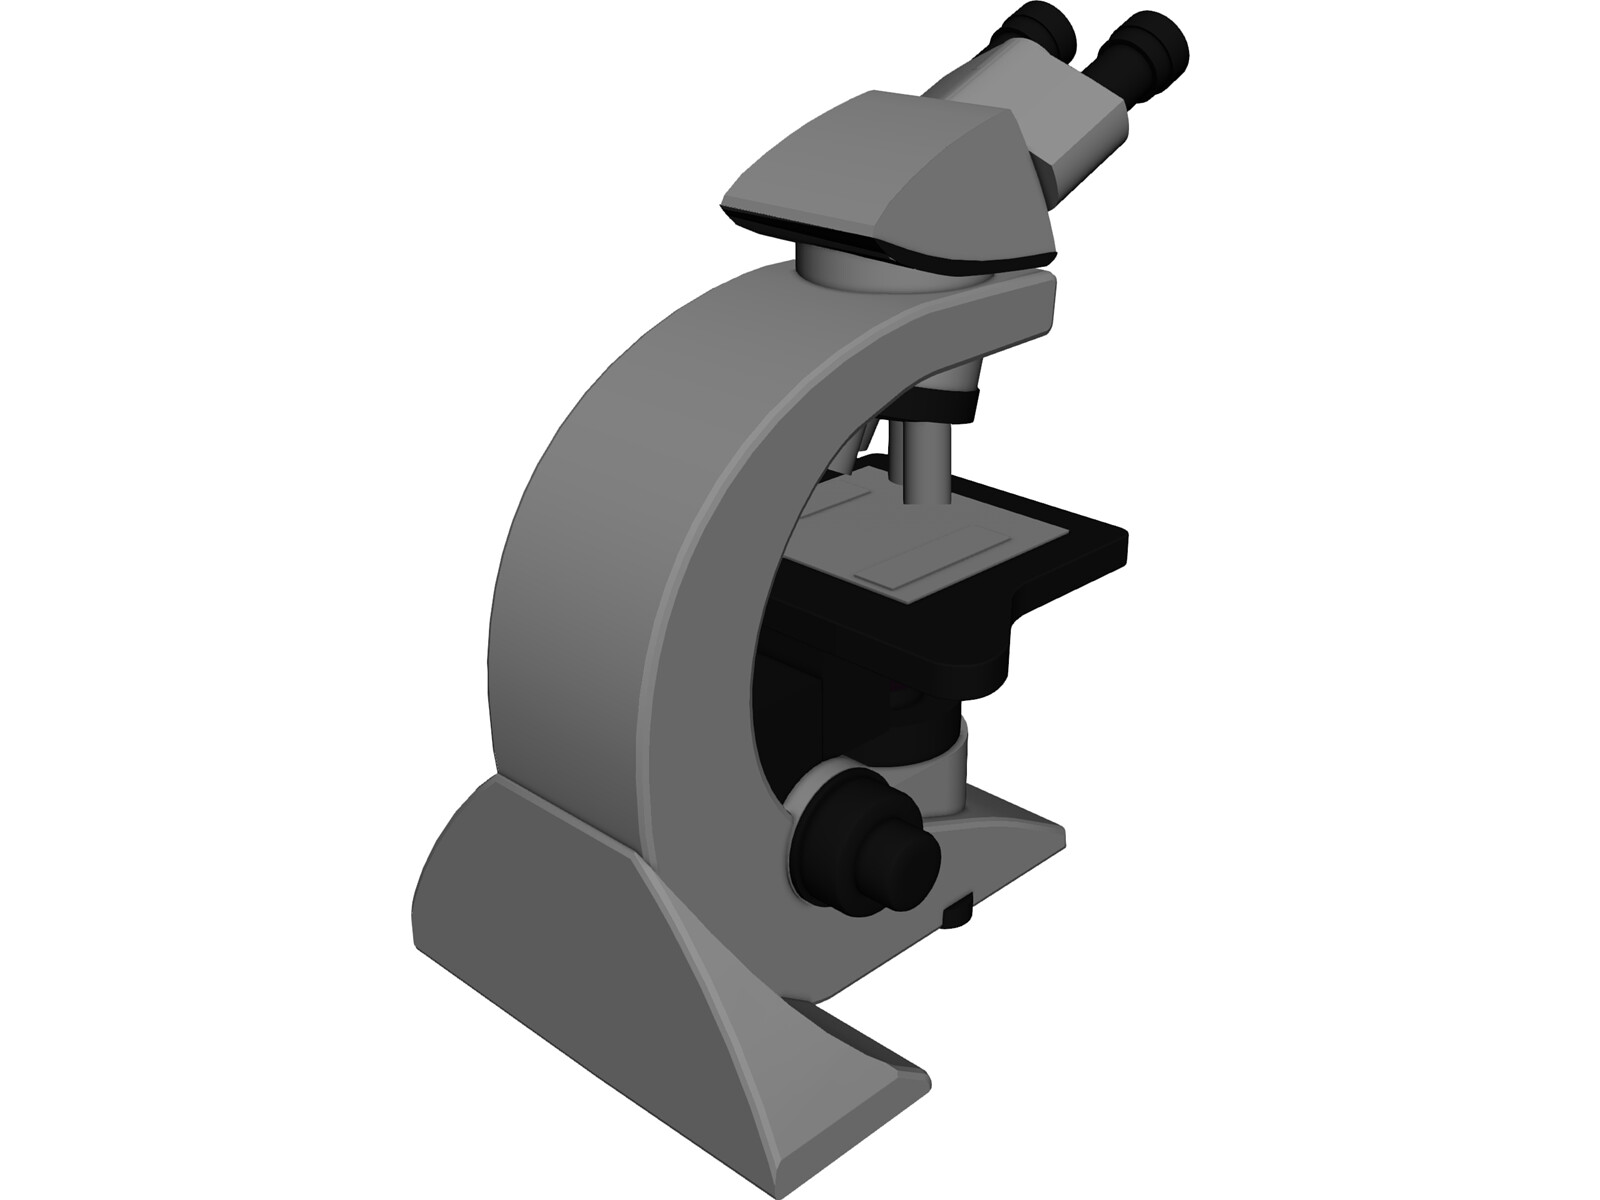 Leica Optical Microscope 3D Model